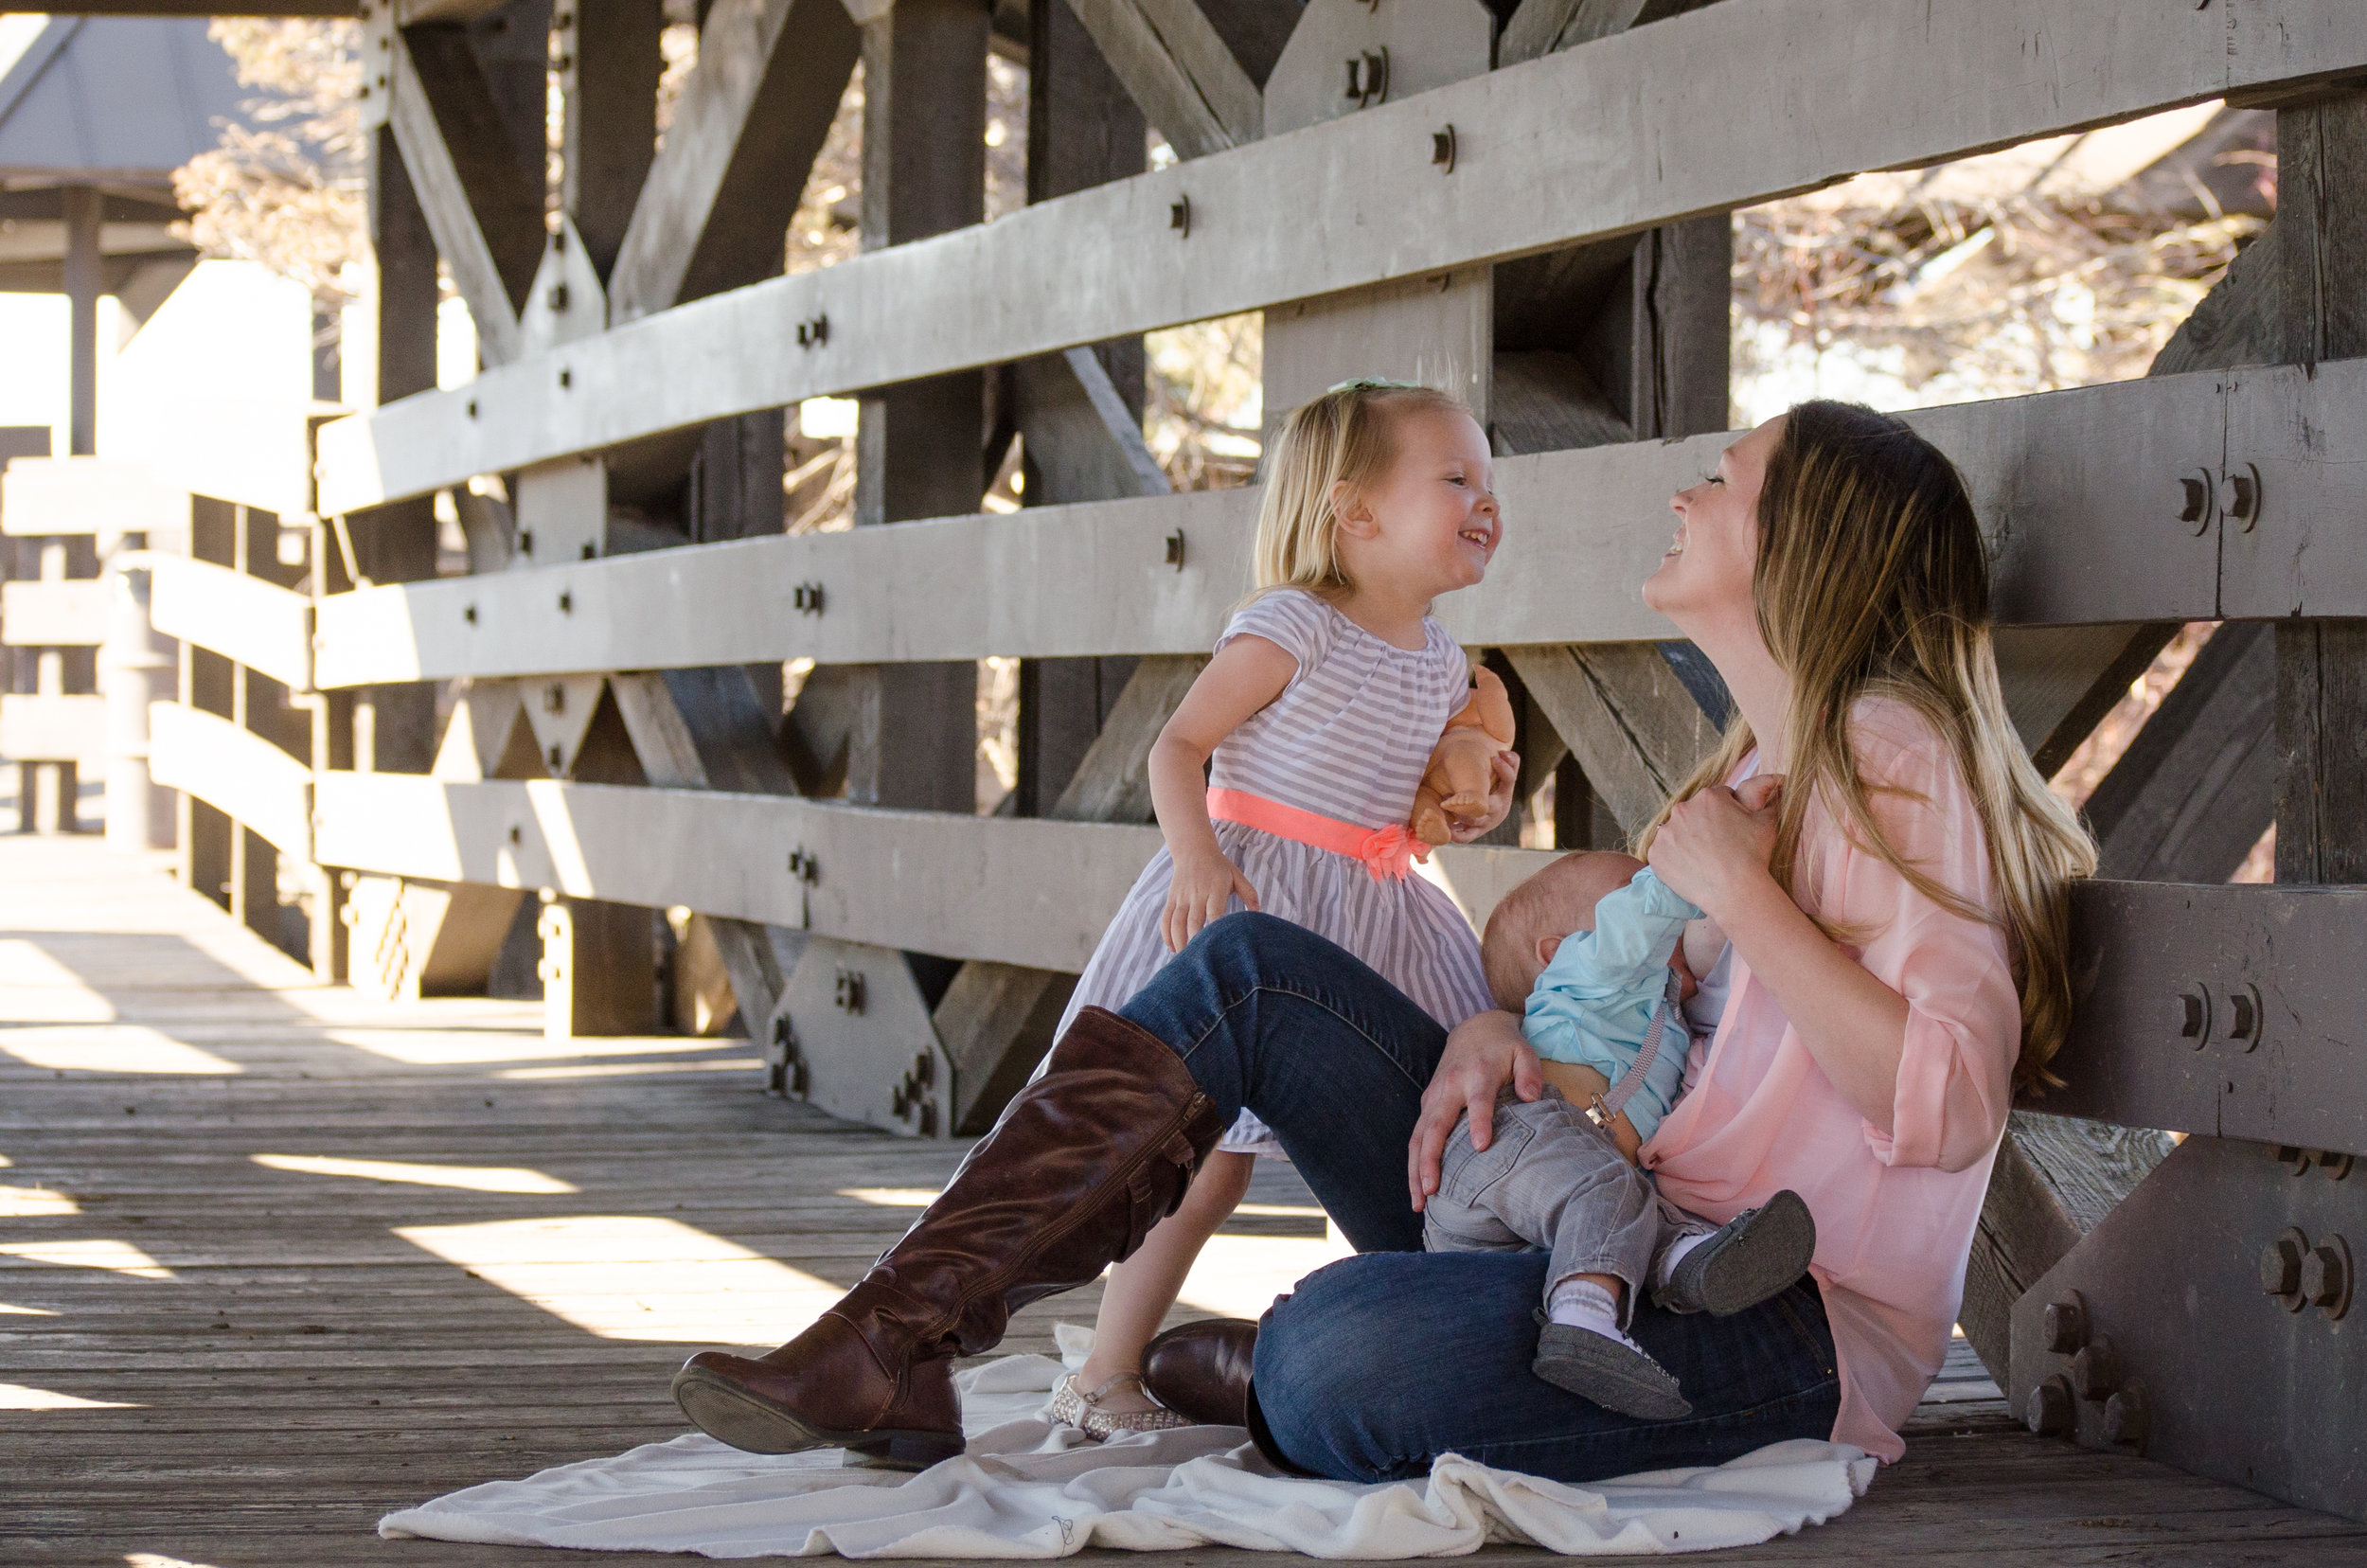 Breastfeeding in public, older sibling, love mommy, mommy and me